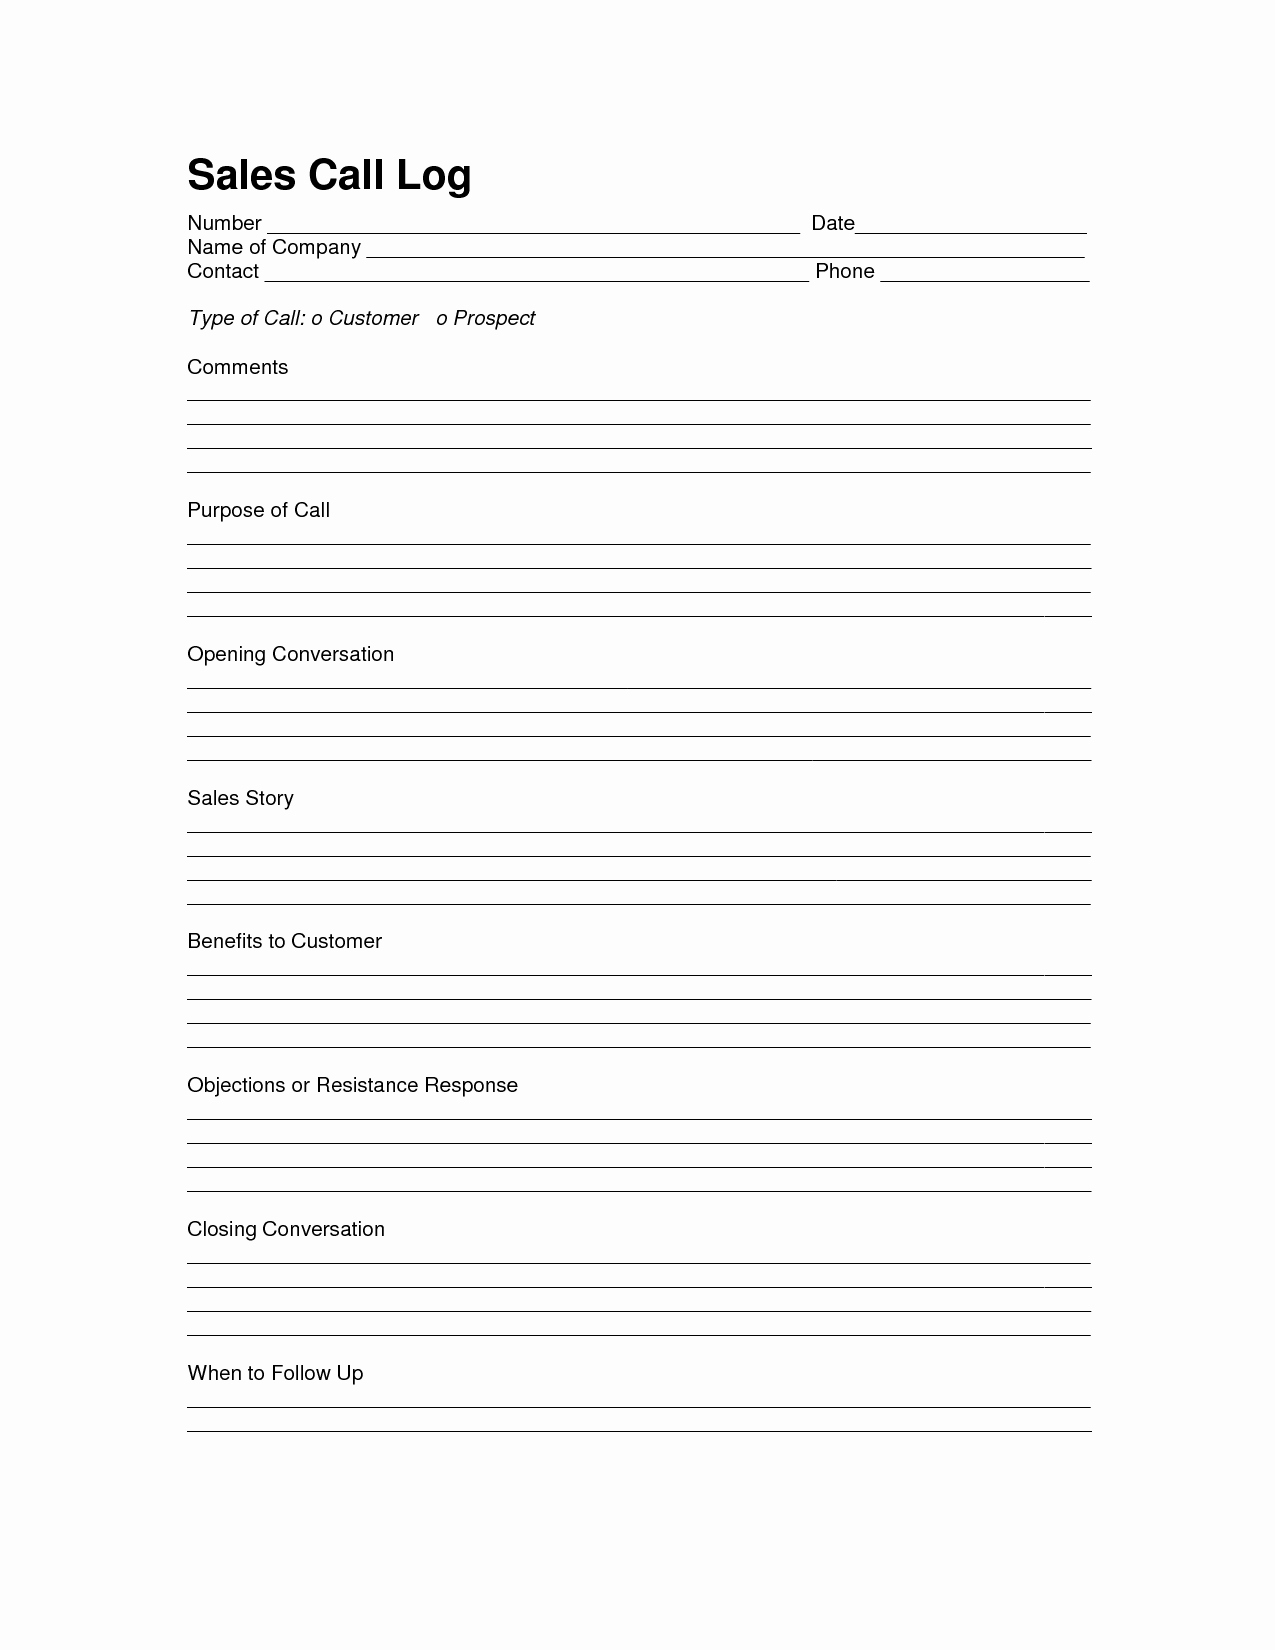 Lead Tracking Spreadsheet Unique Sales Log Sheet Template Sales Call In Lead Tracking Spreadsheet